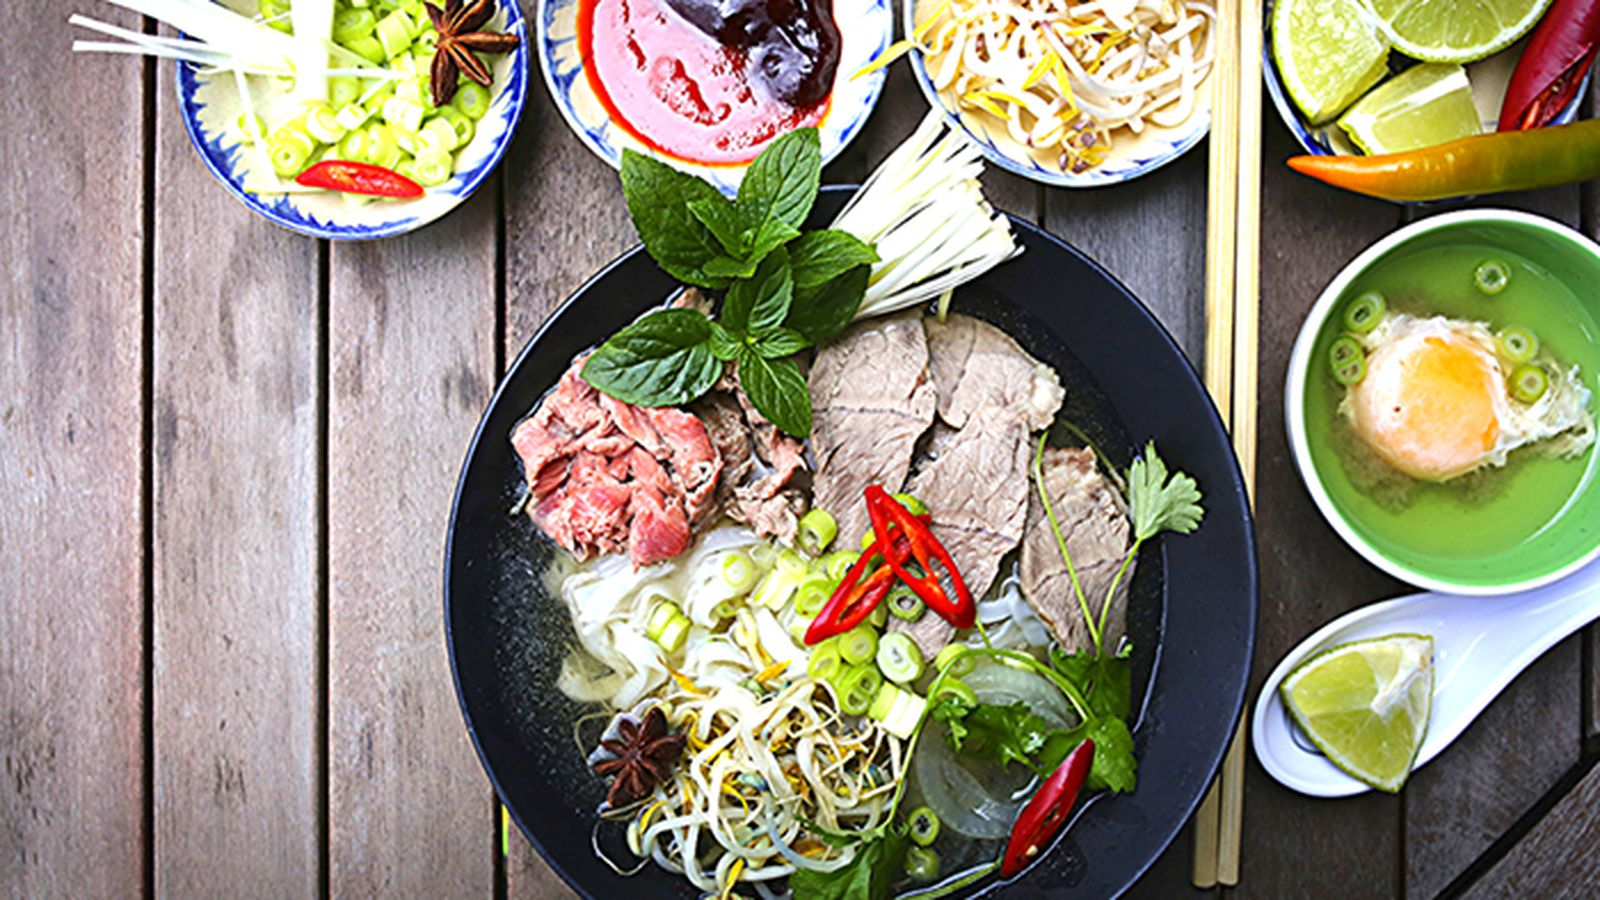 11 Great Places to Eat Pho in Nashville